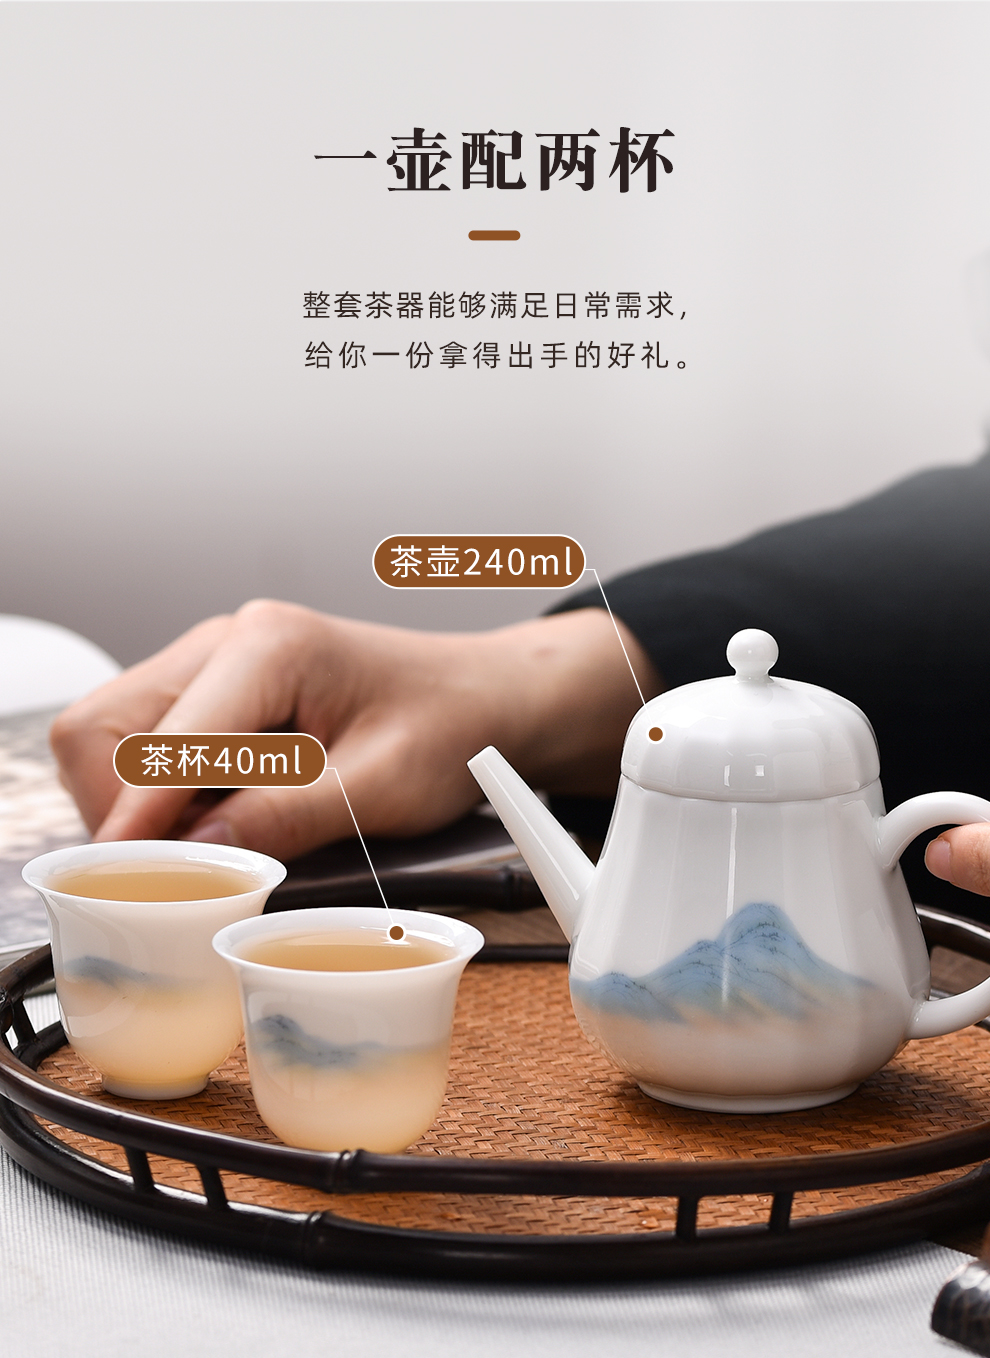 Jingdezhen flagship store thousands of jiangshan ceramic teapot teacup suits for home a pot of two cups of kung fu tea set